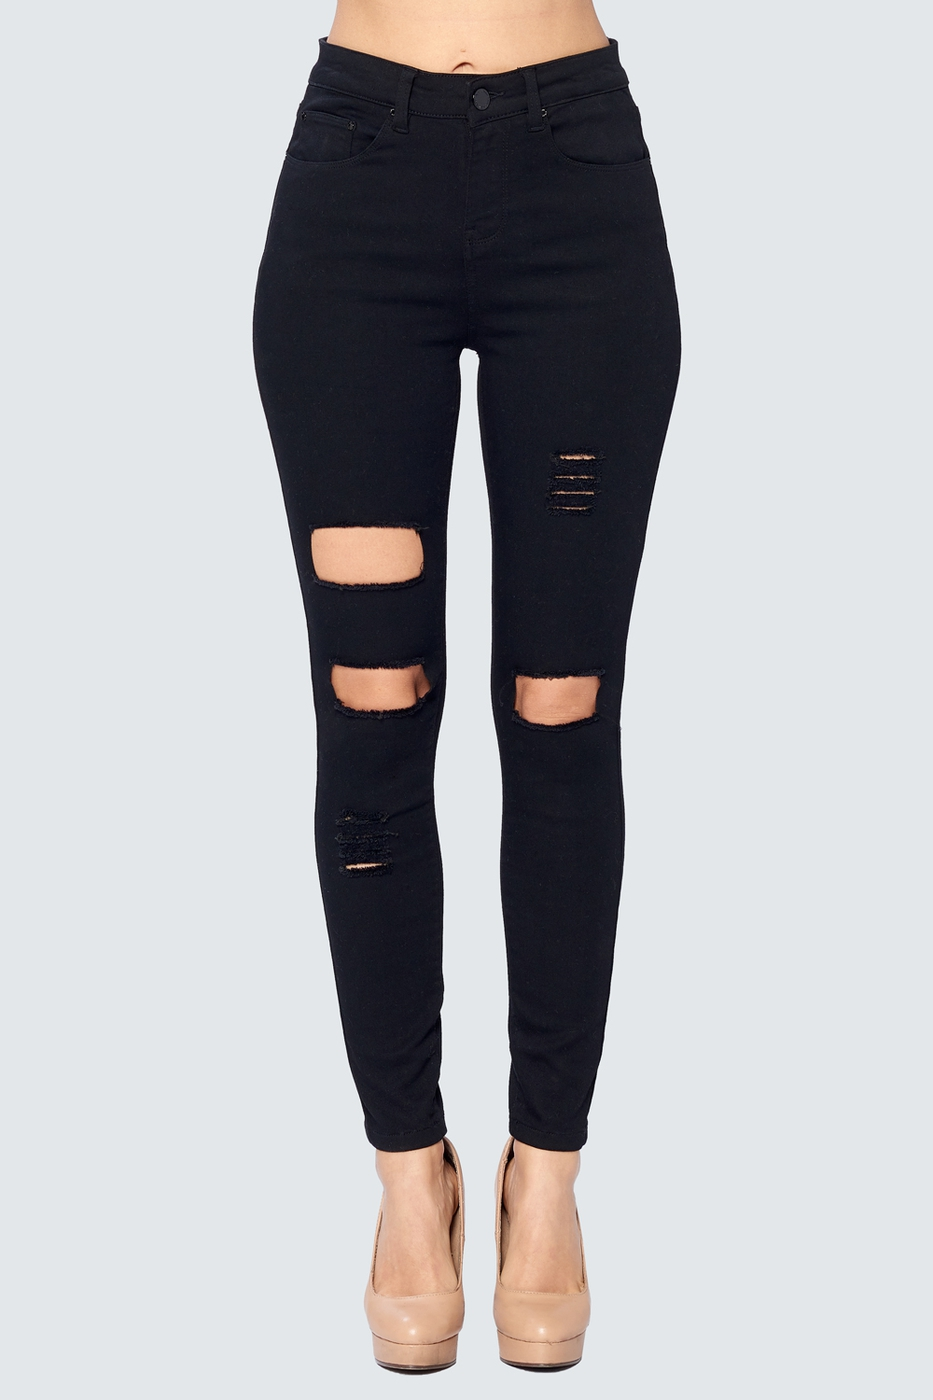 DESTROYED SKINNY JEANS - orangeshine.com